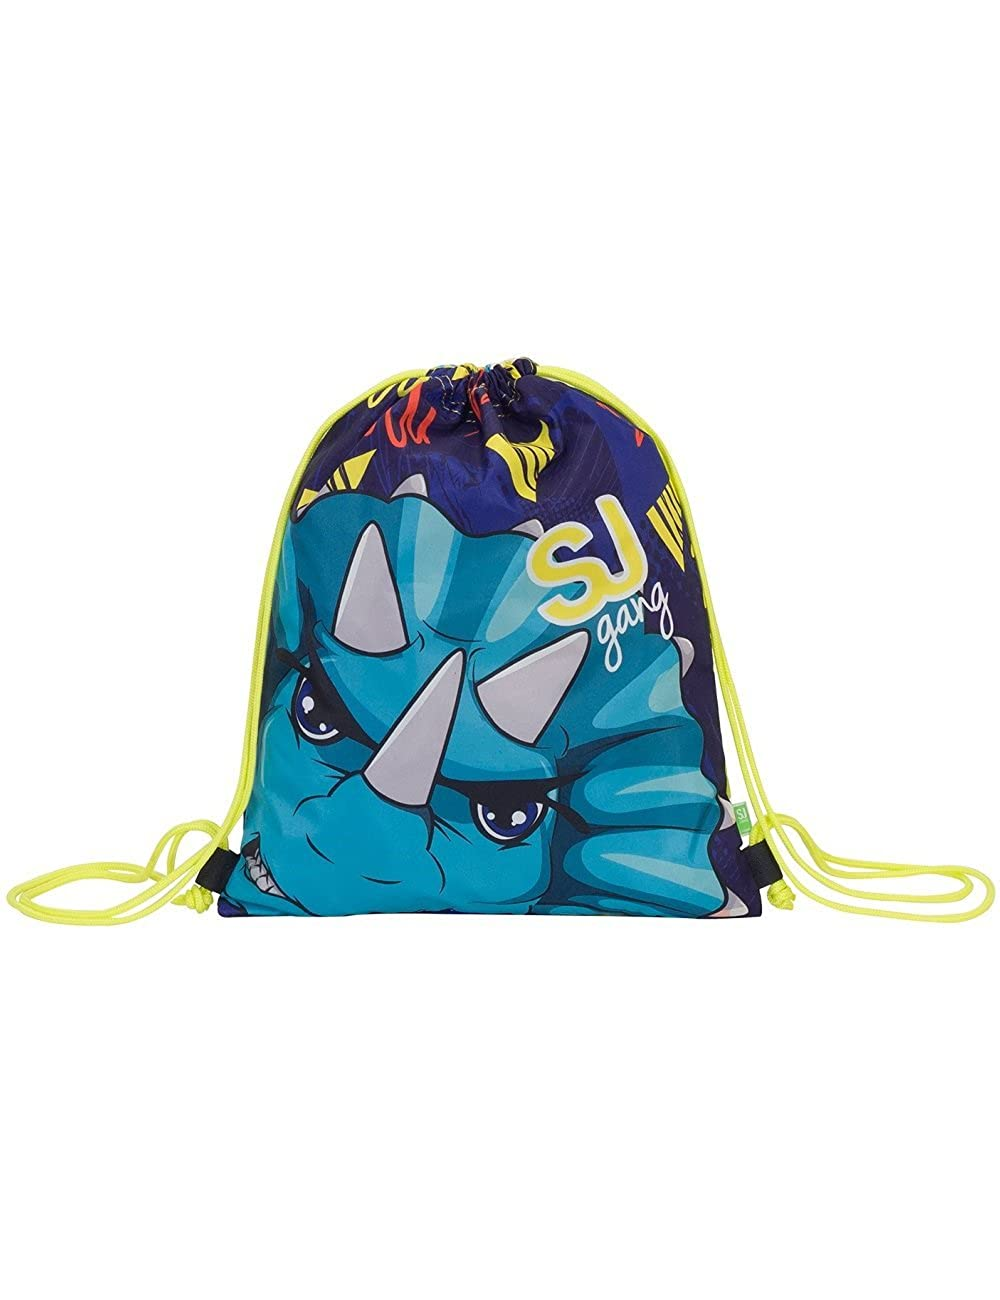 School Gymsack Drawsting Backpack SEVEN SJ ANIMALS Blue Yellow Shark